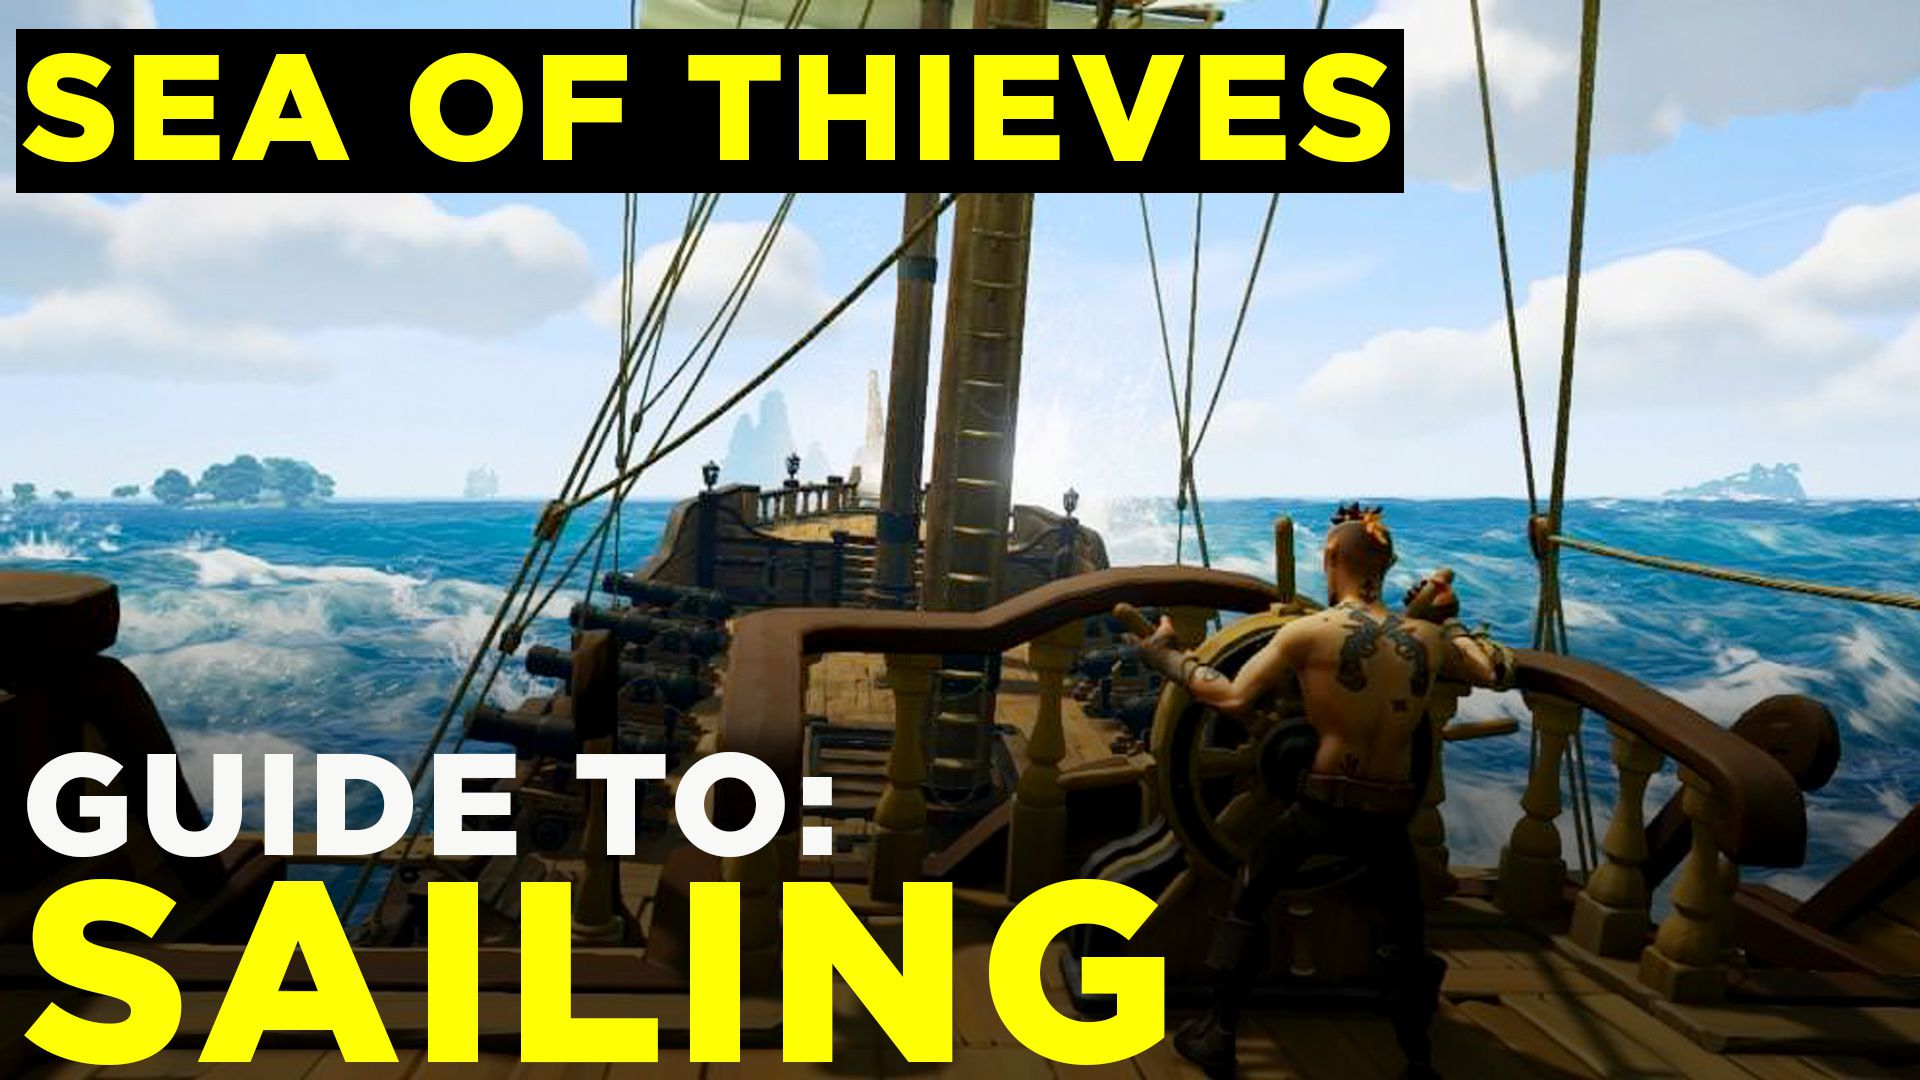 Sea of Thieves sailing guide - Polygon